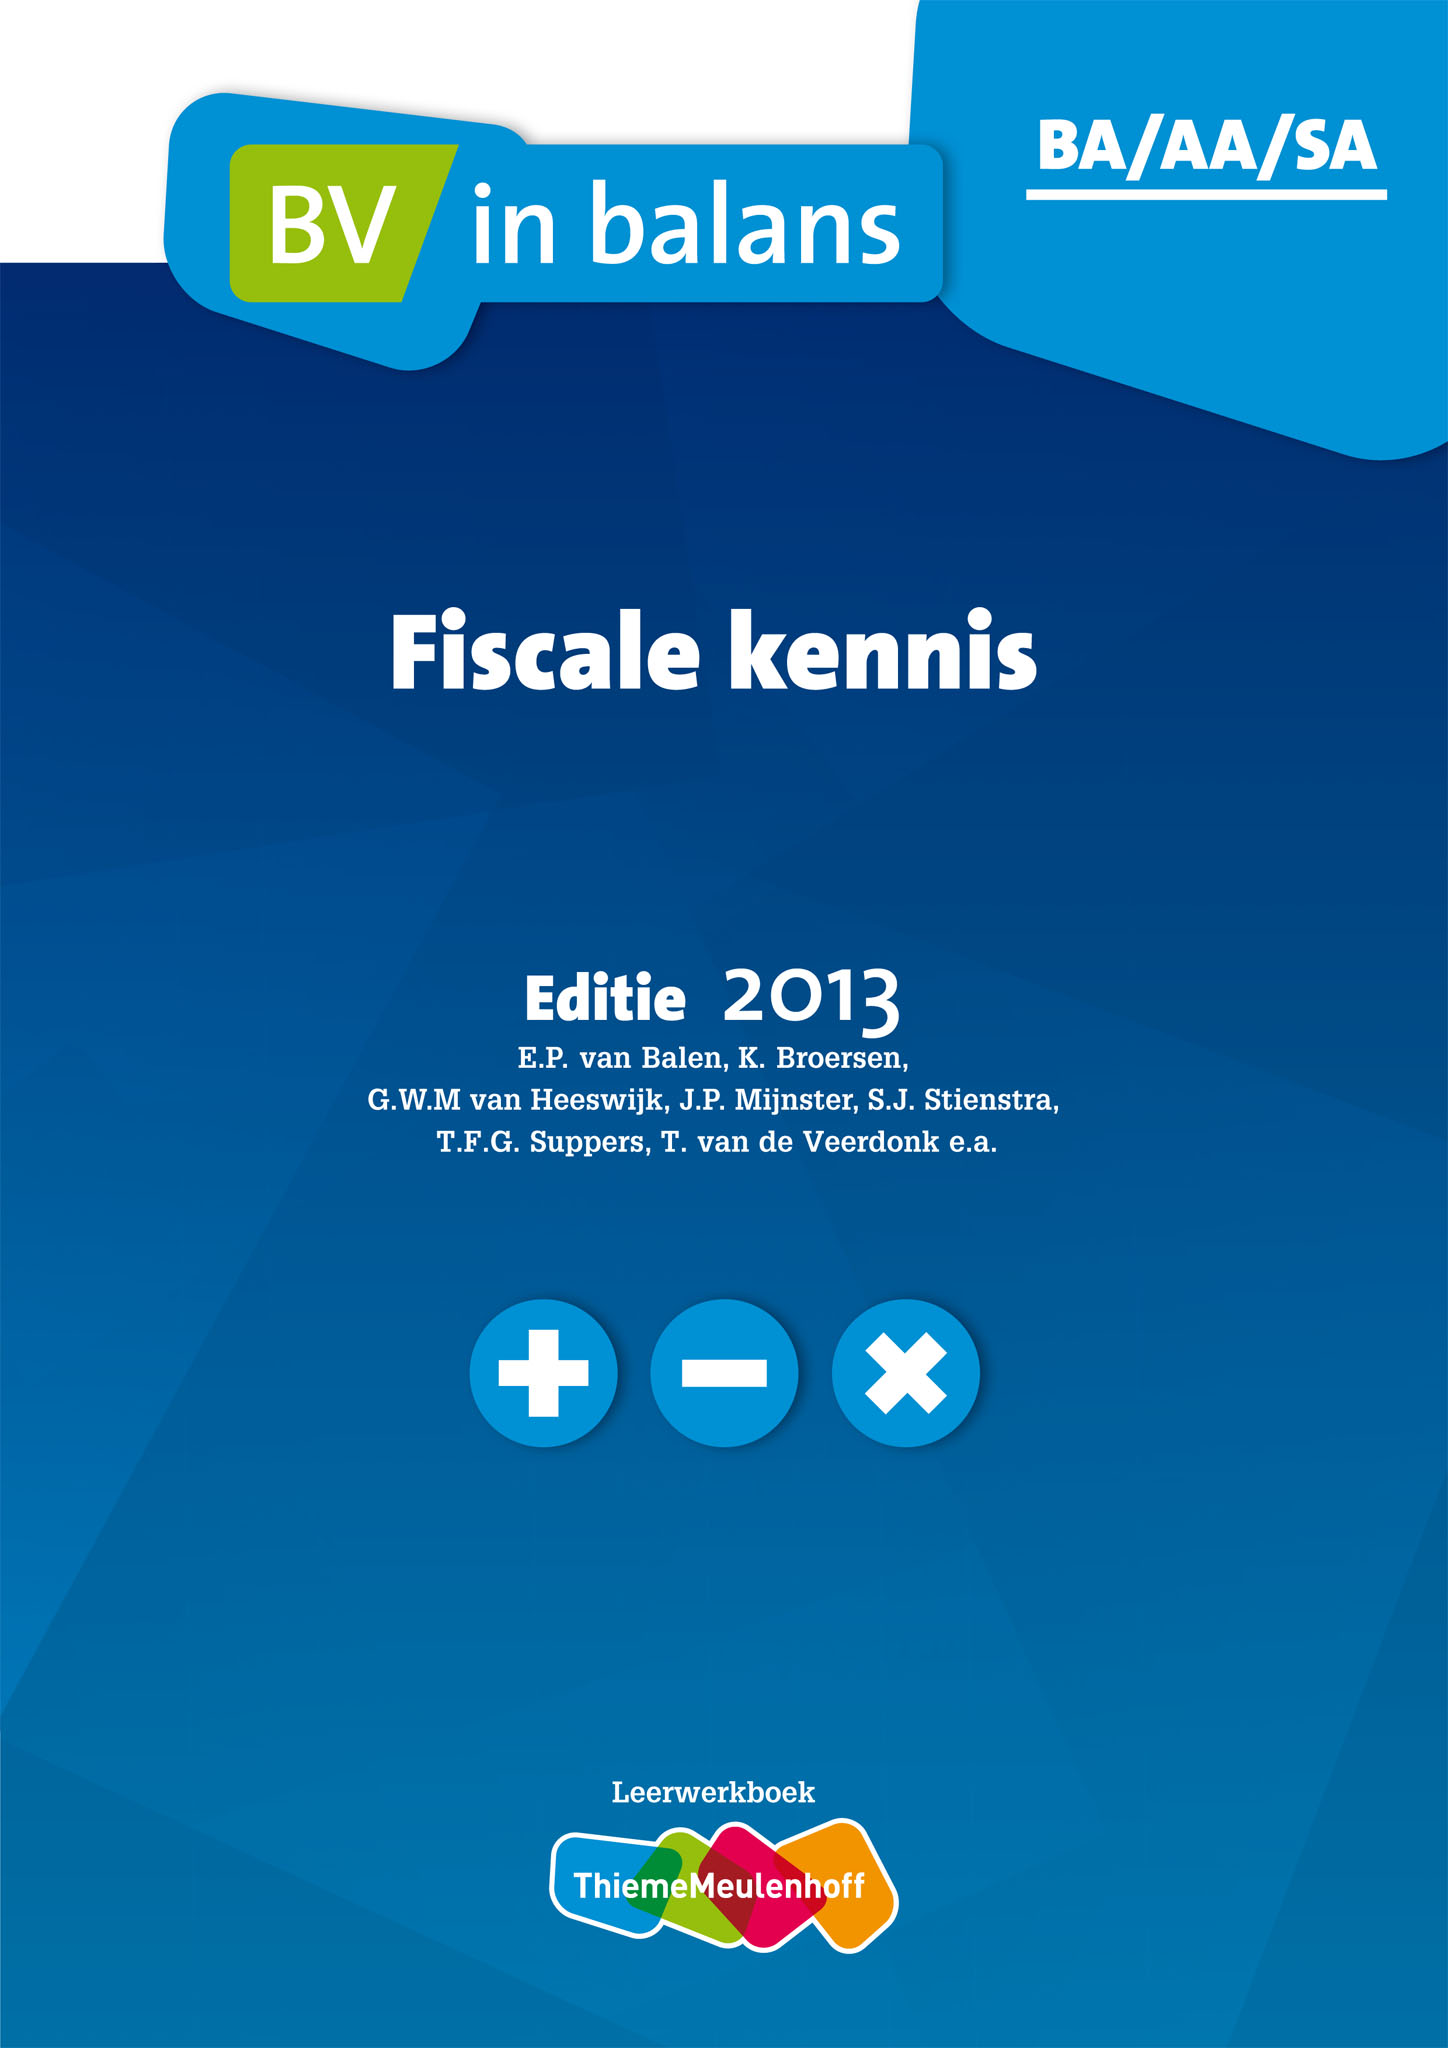 Fiscale kennis